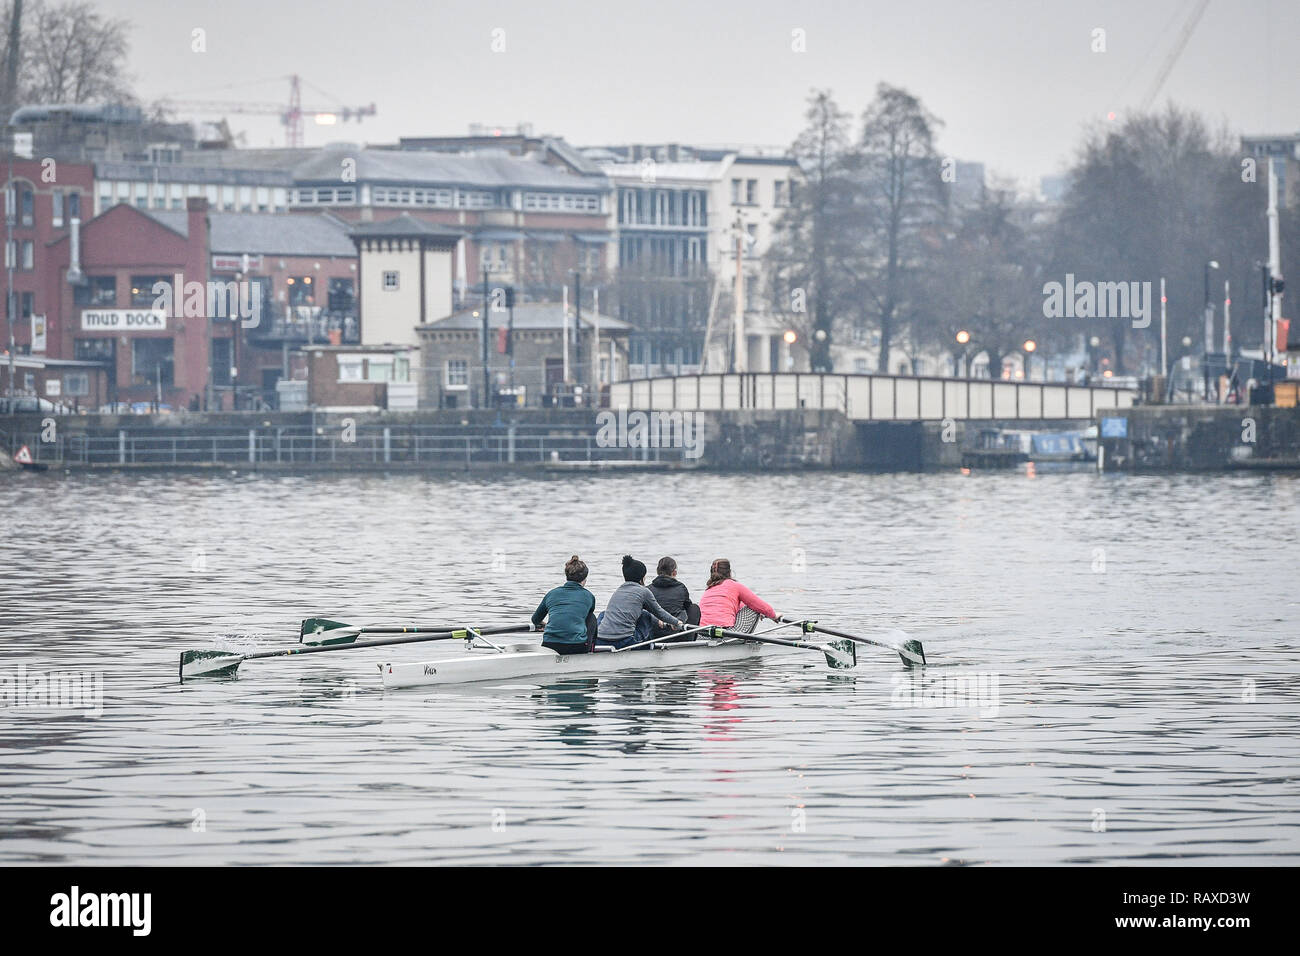 Rowers glide across the Harbourside in Bristol, as temperatures drop across the UK. - Stock Image